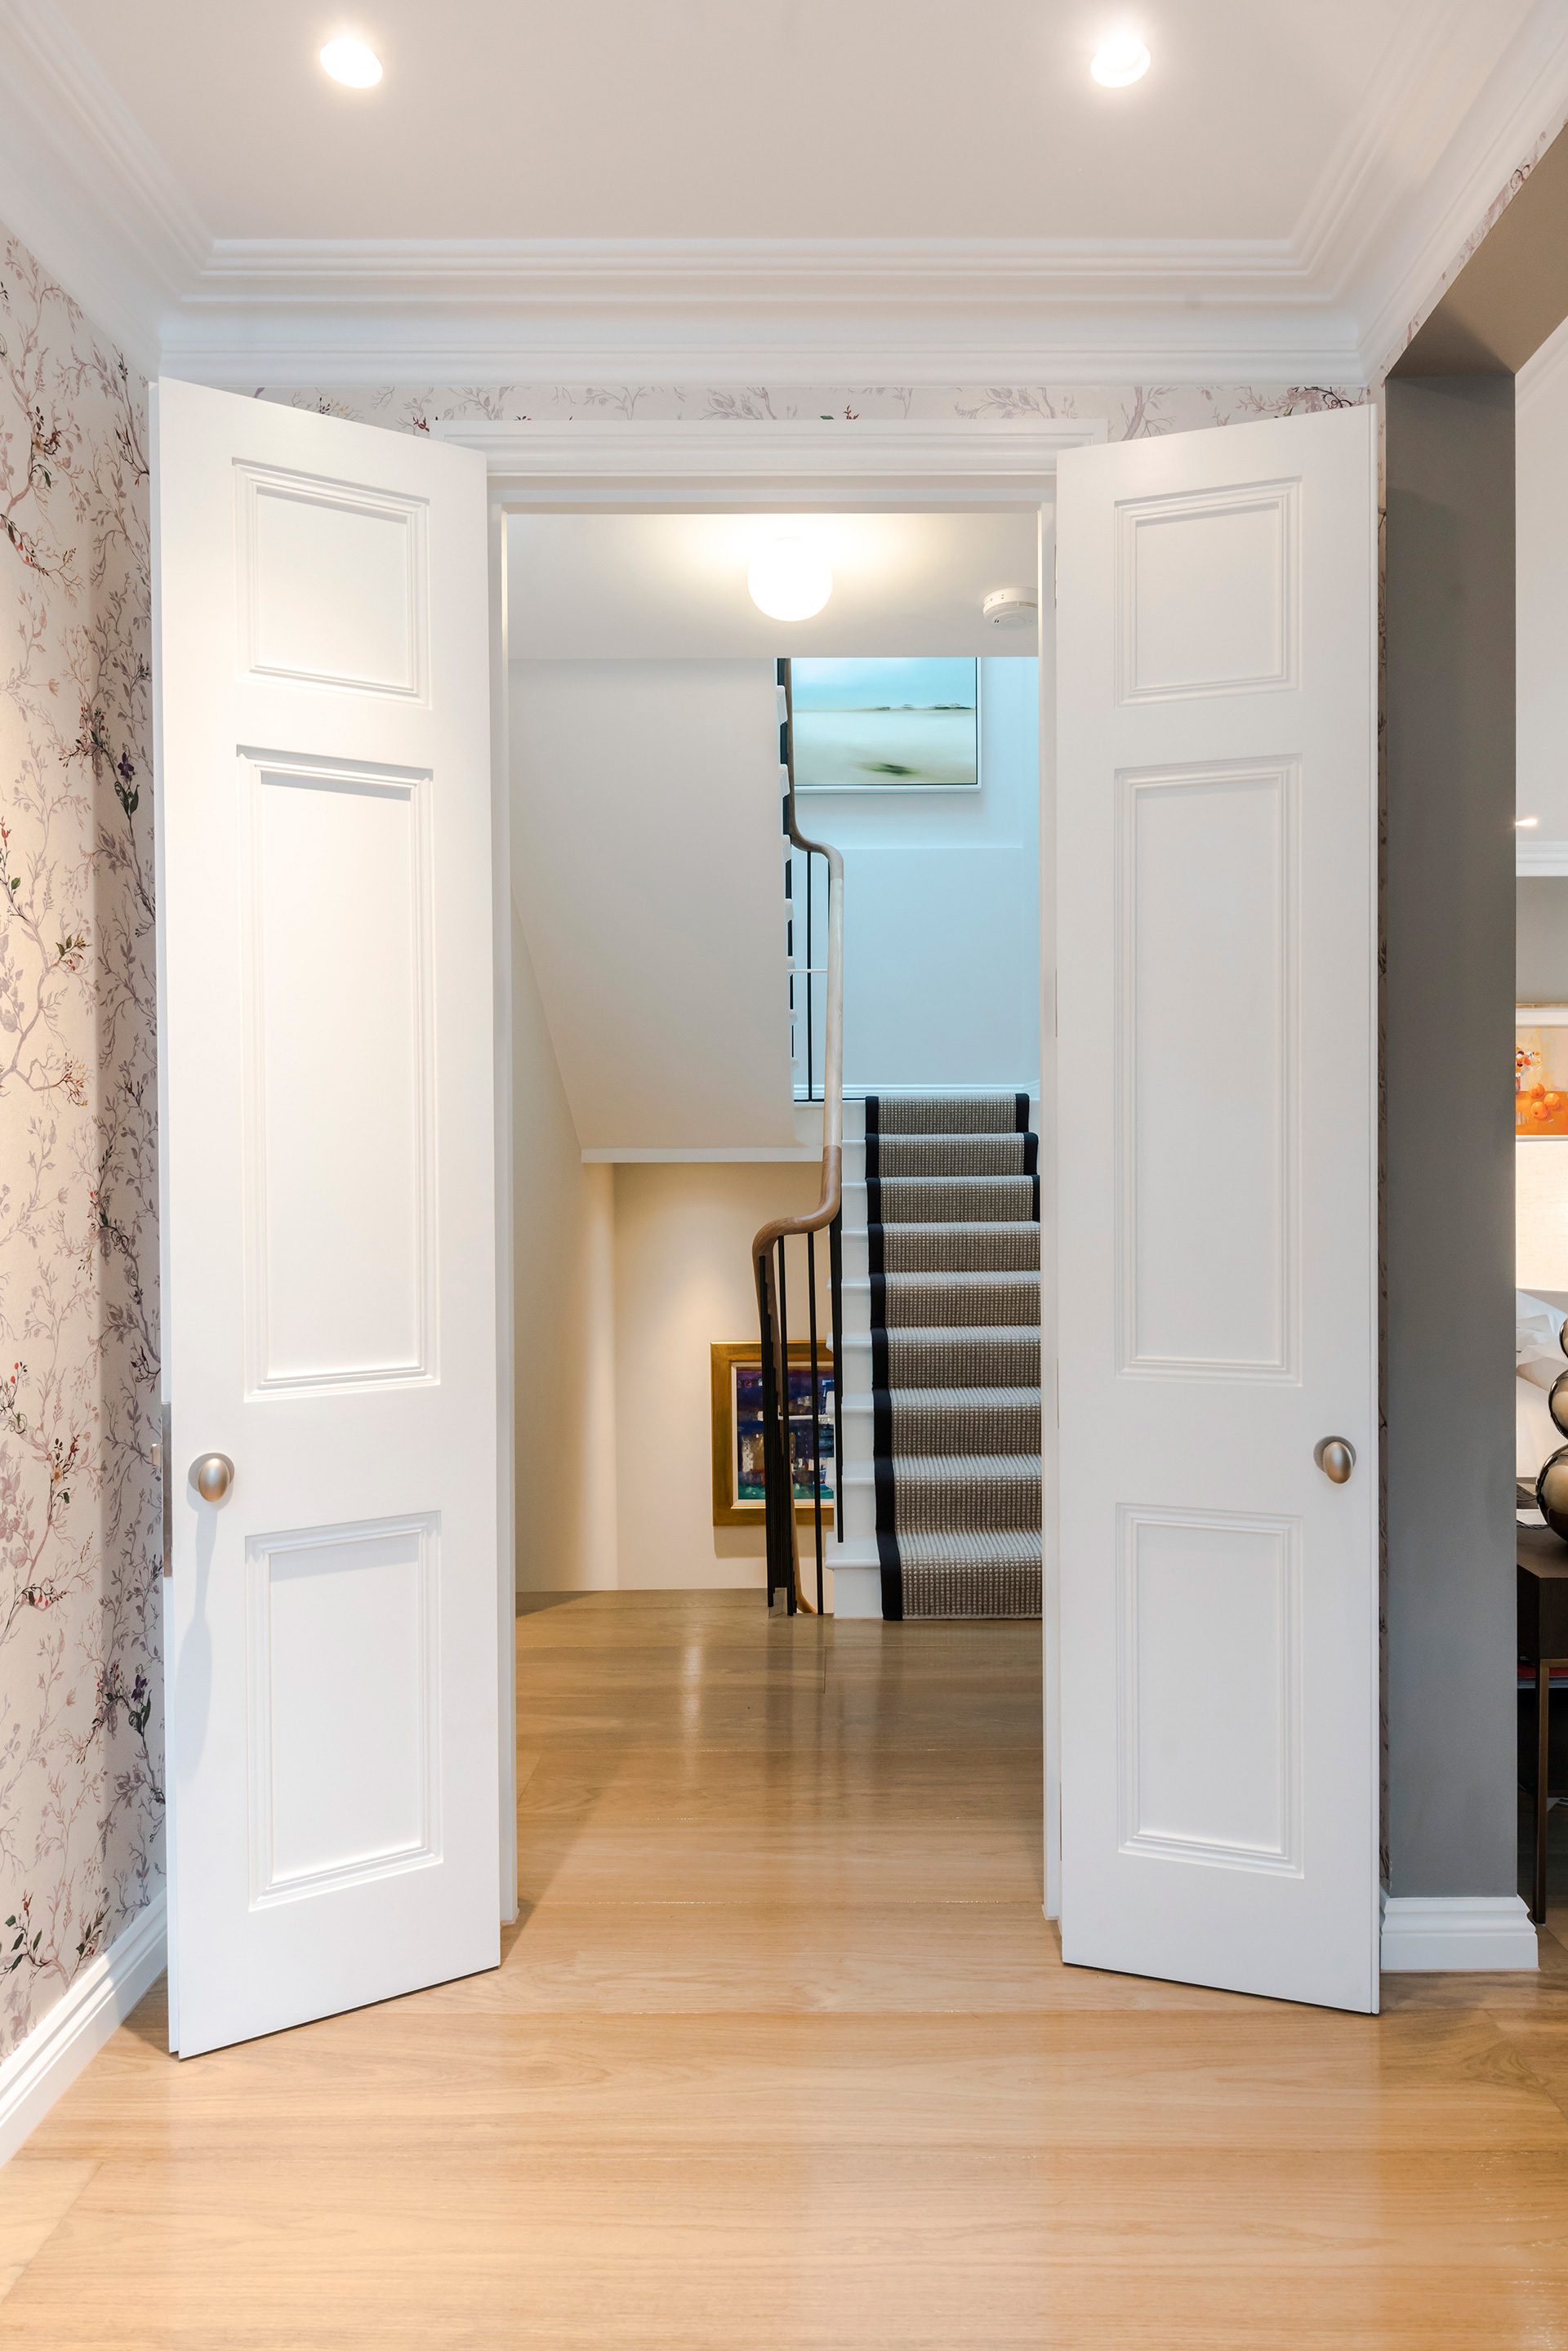 Studio 29 residential architects refurbishment kensington 4